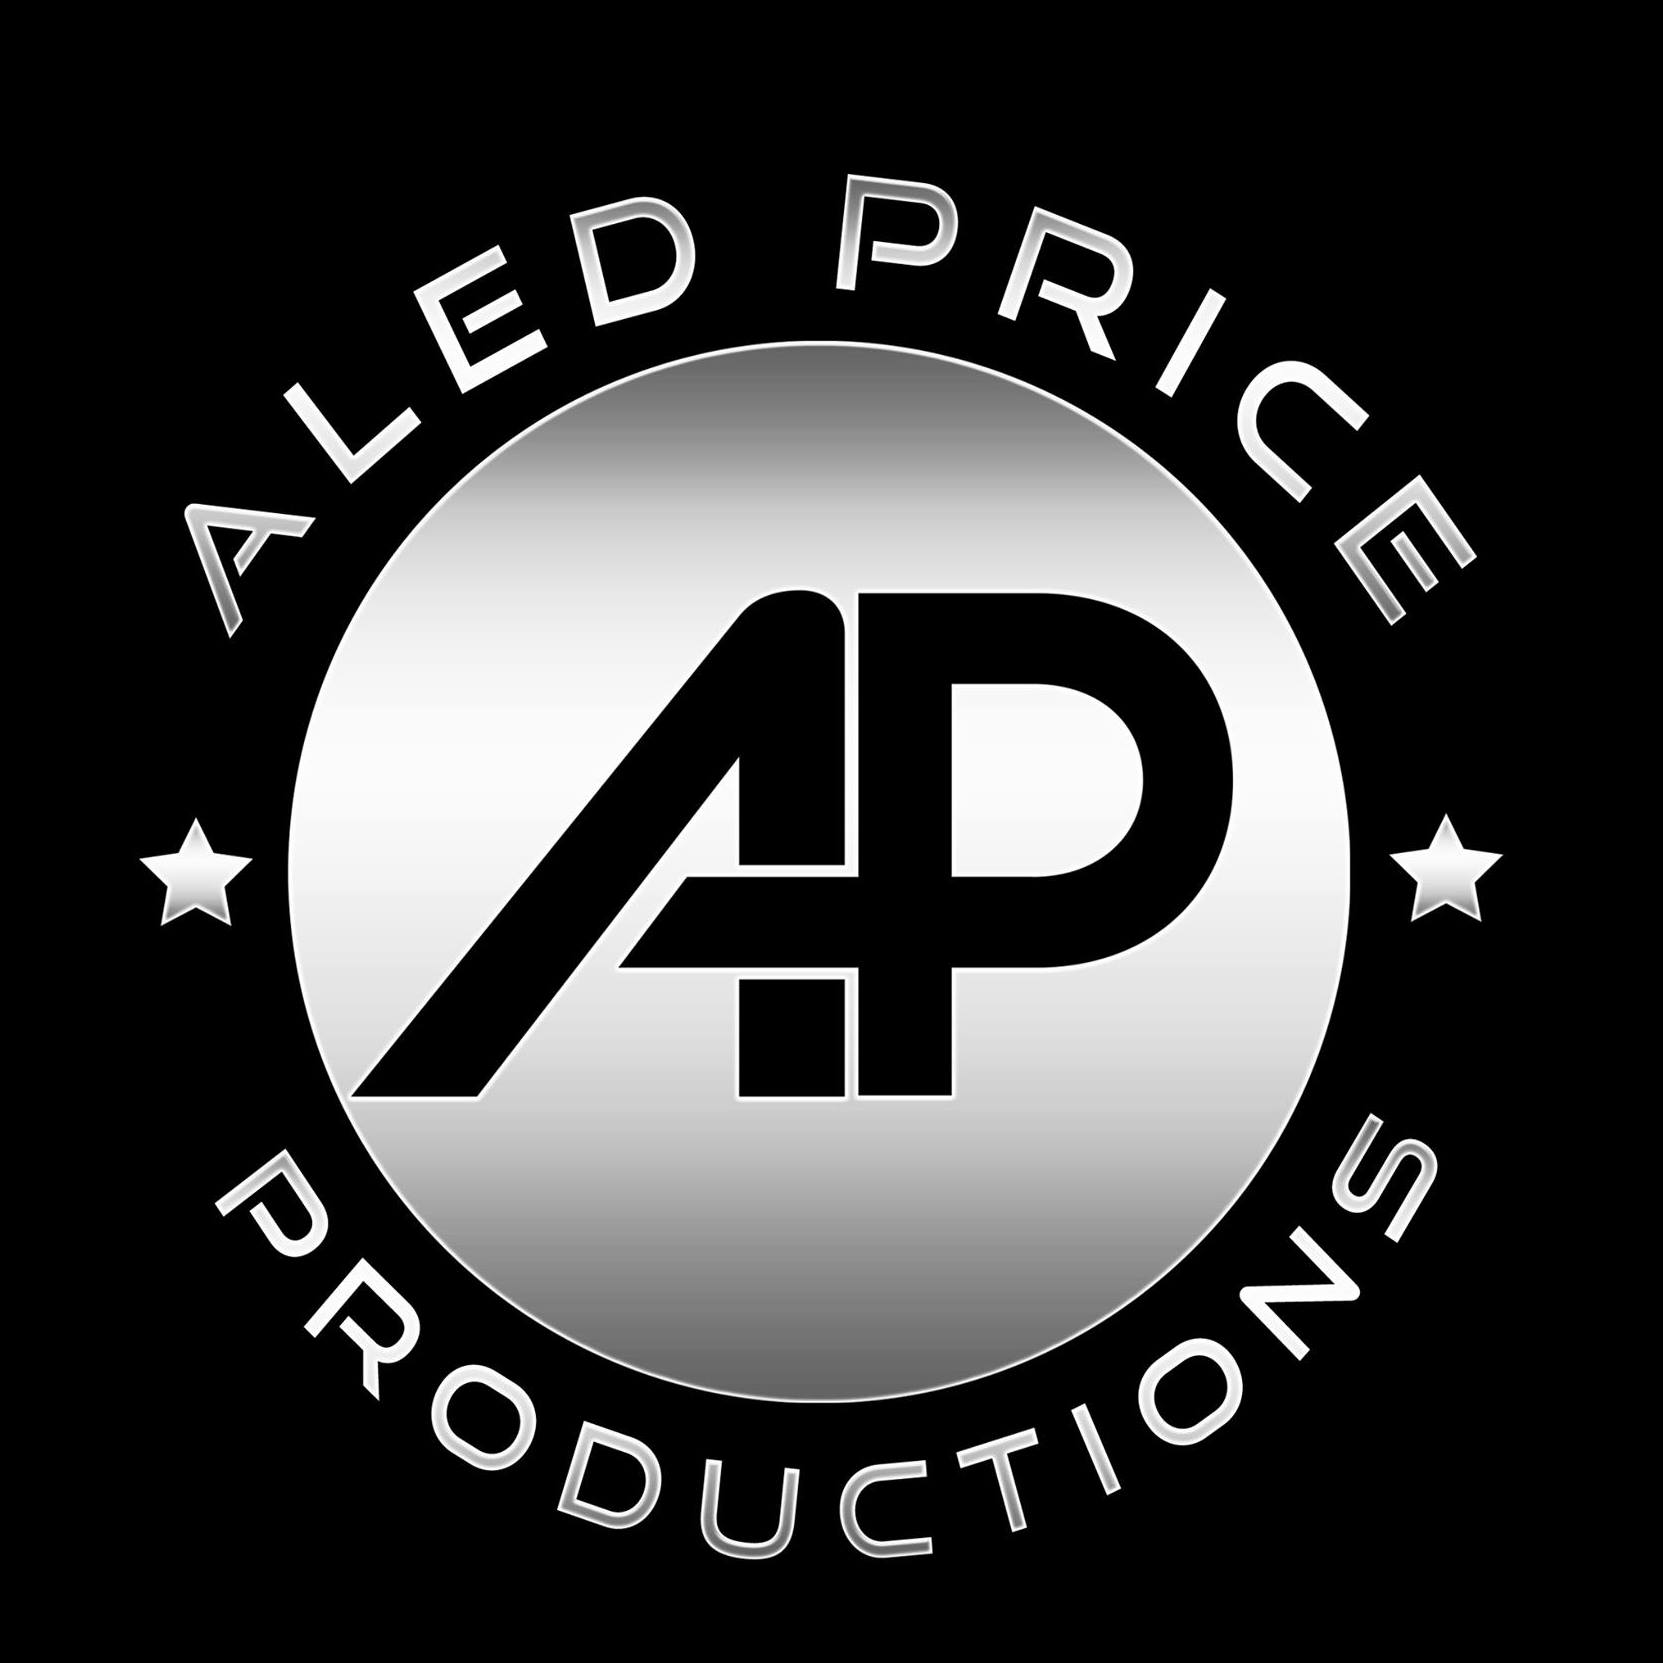 Aled Price Productions